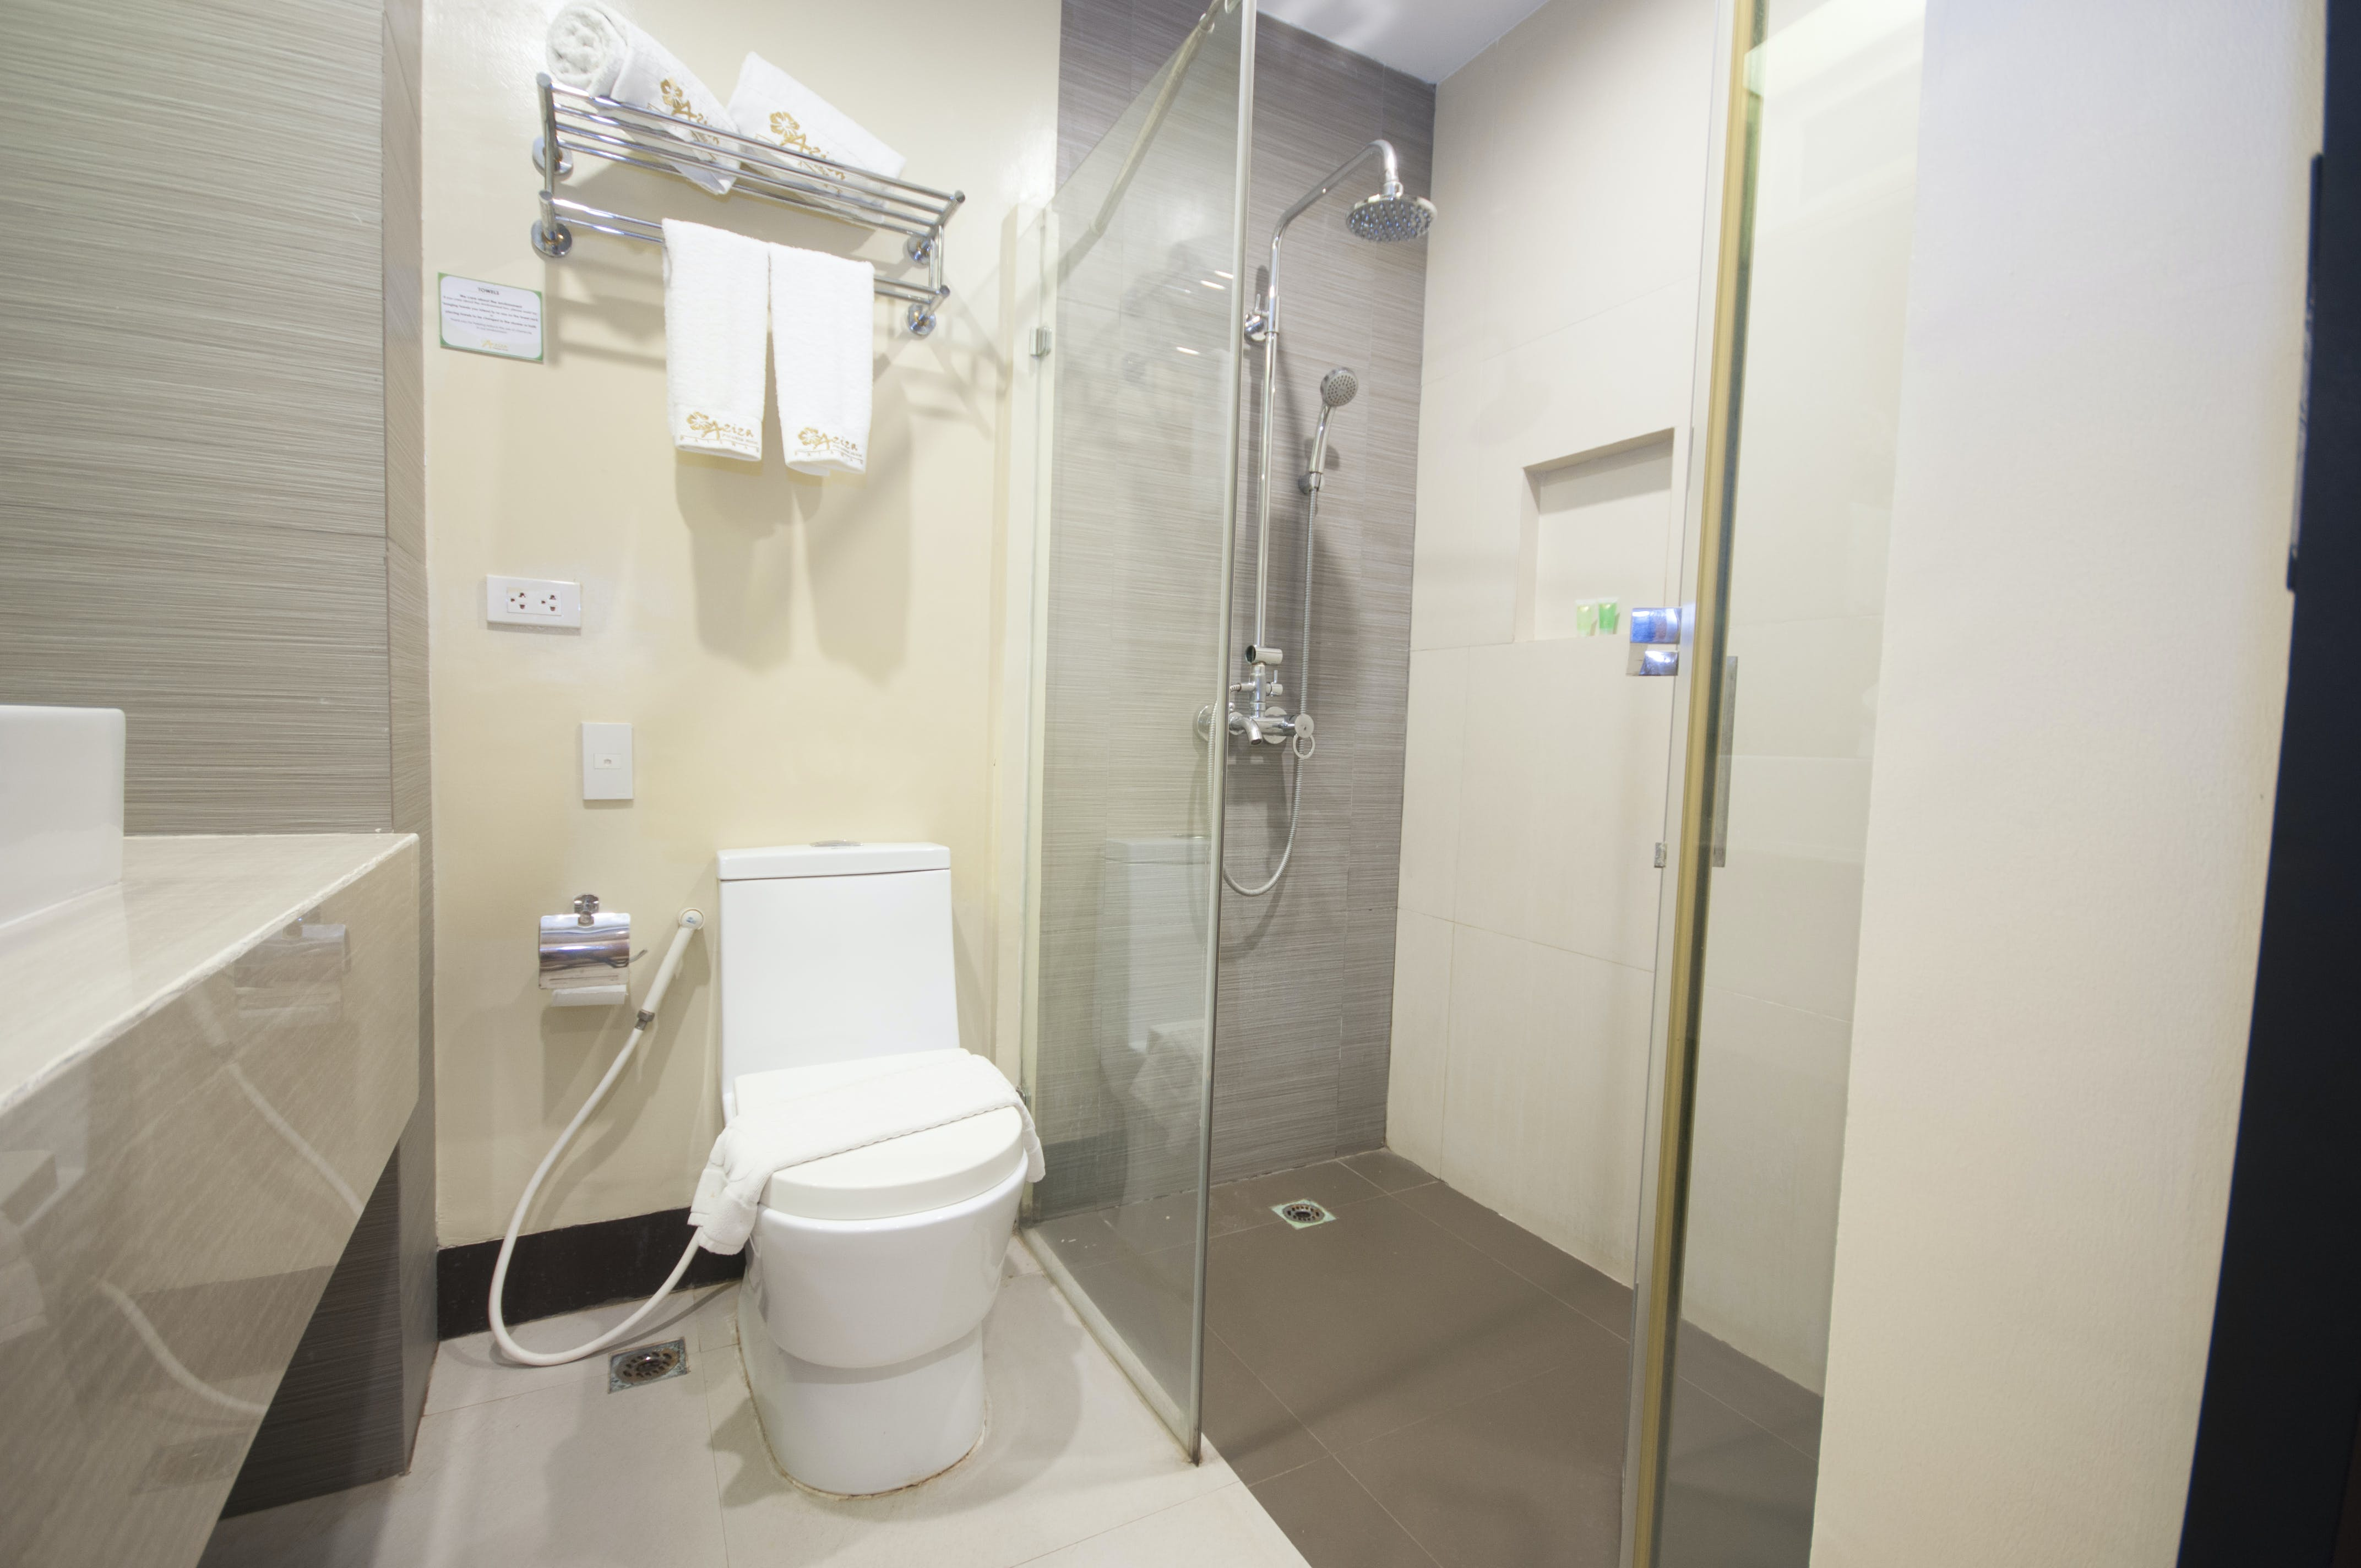 GUESTROOM'S TOILET AND BATH